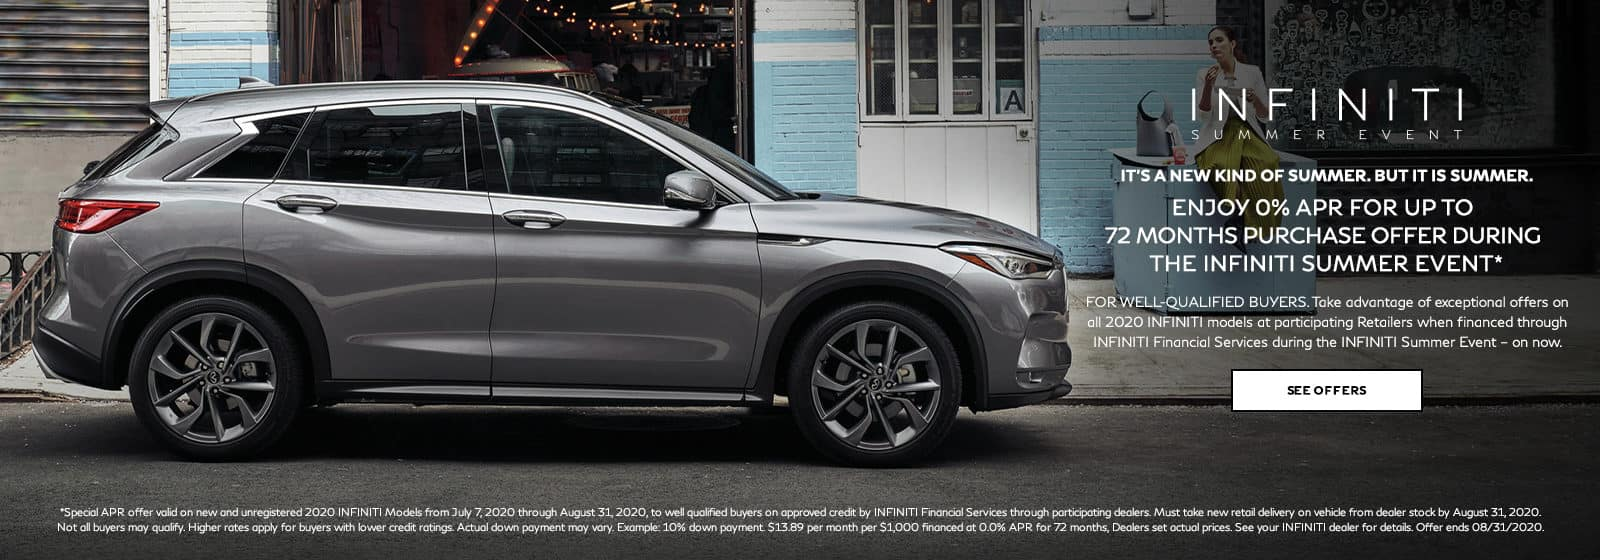 INFINITI Summer Event. No Payments for up to 90 Days on purchase or lease of all 2020 INFINITI Models. Plus 0% APR for up to 72 months purchase offer. For well-qualified buyers. Restrictions may apply. See retailer for complete details. Offer ends August 31, 2020.